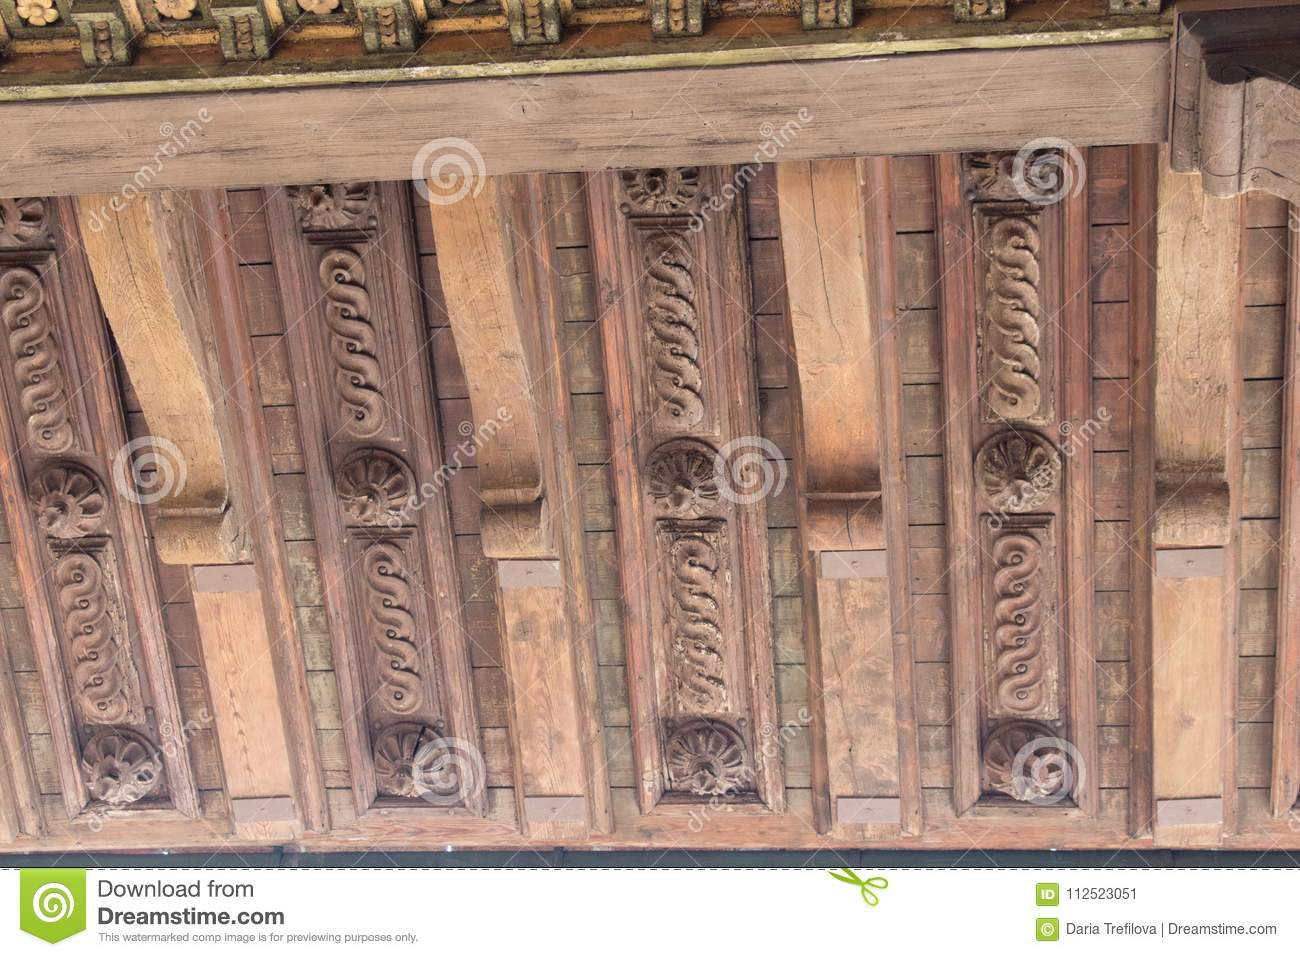 Carved roof fragment in the Terrace of Saturn at Palazzo Vecchio, Florence, Italy.